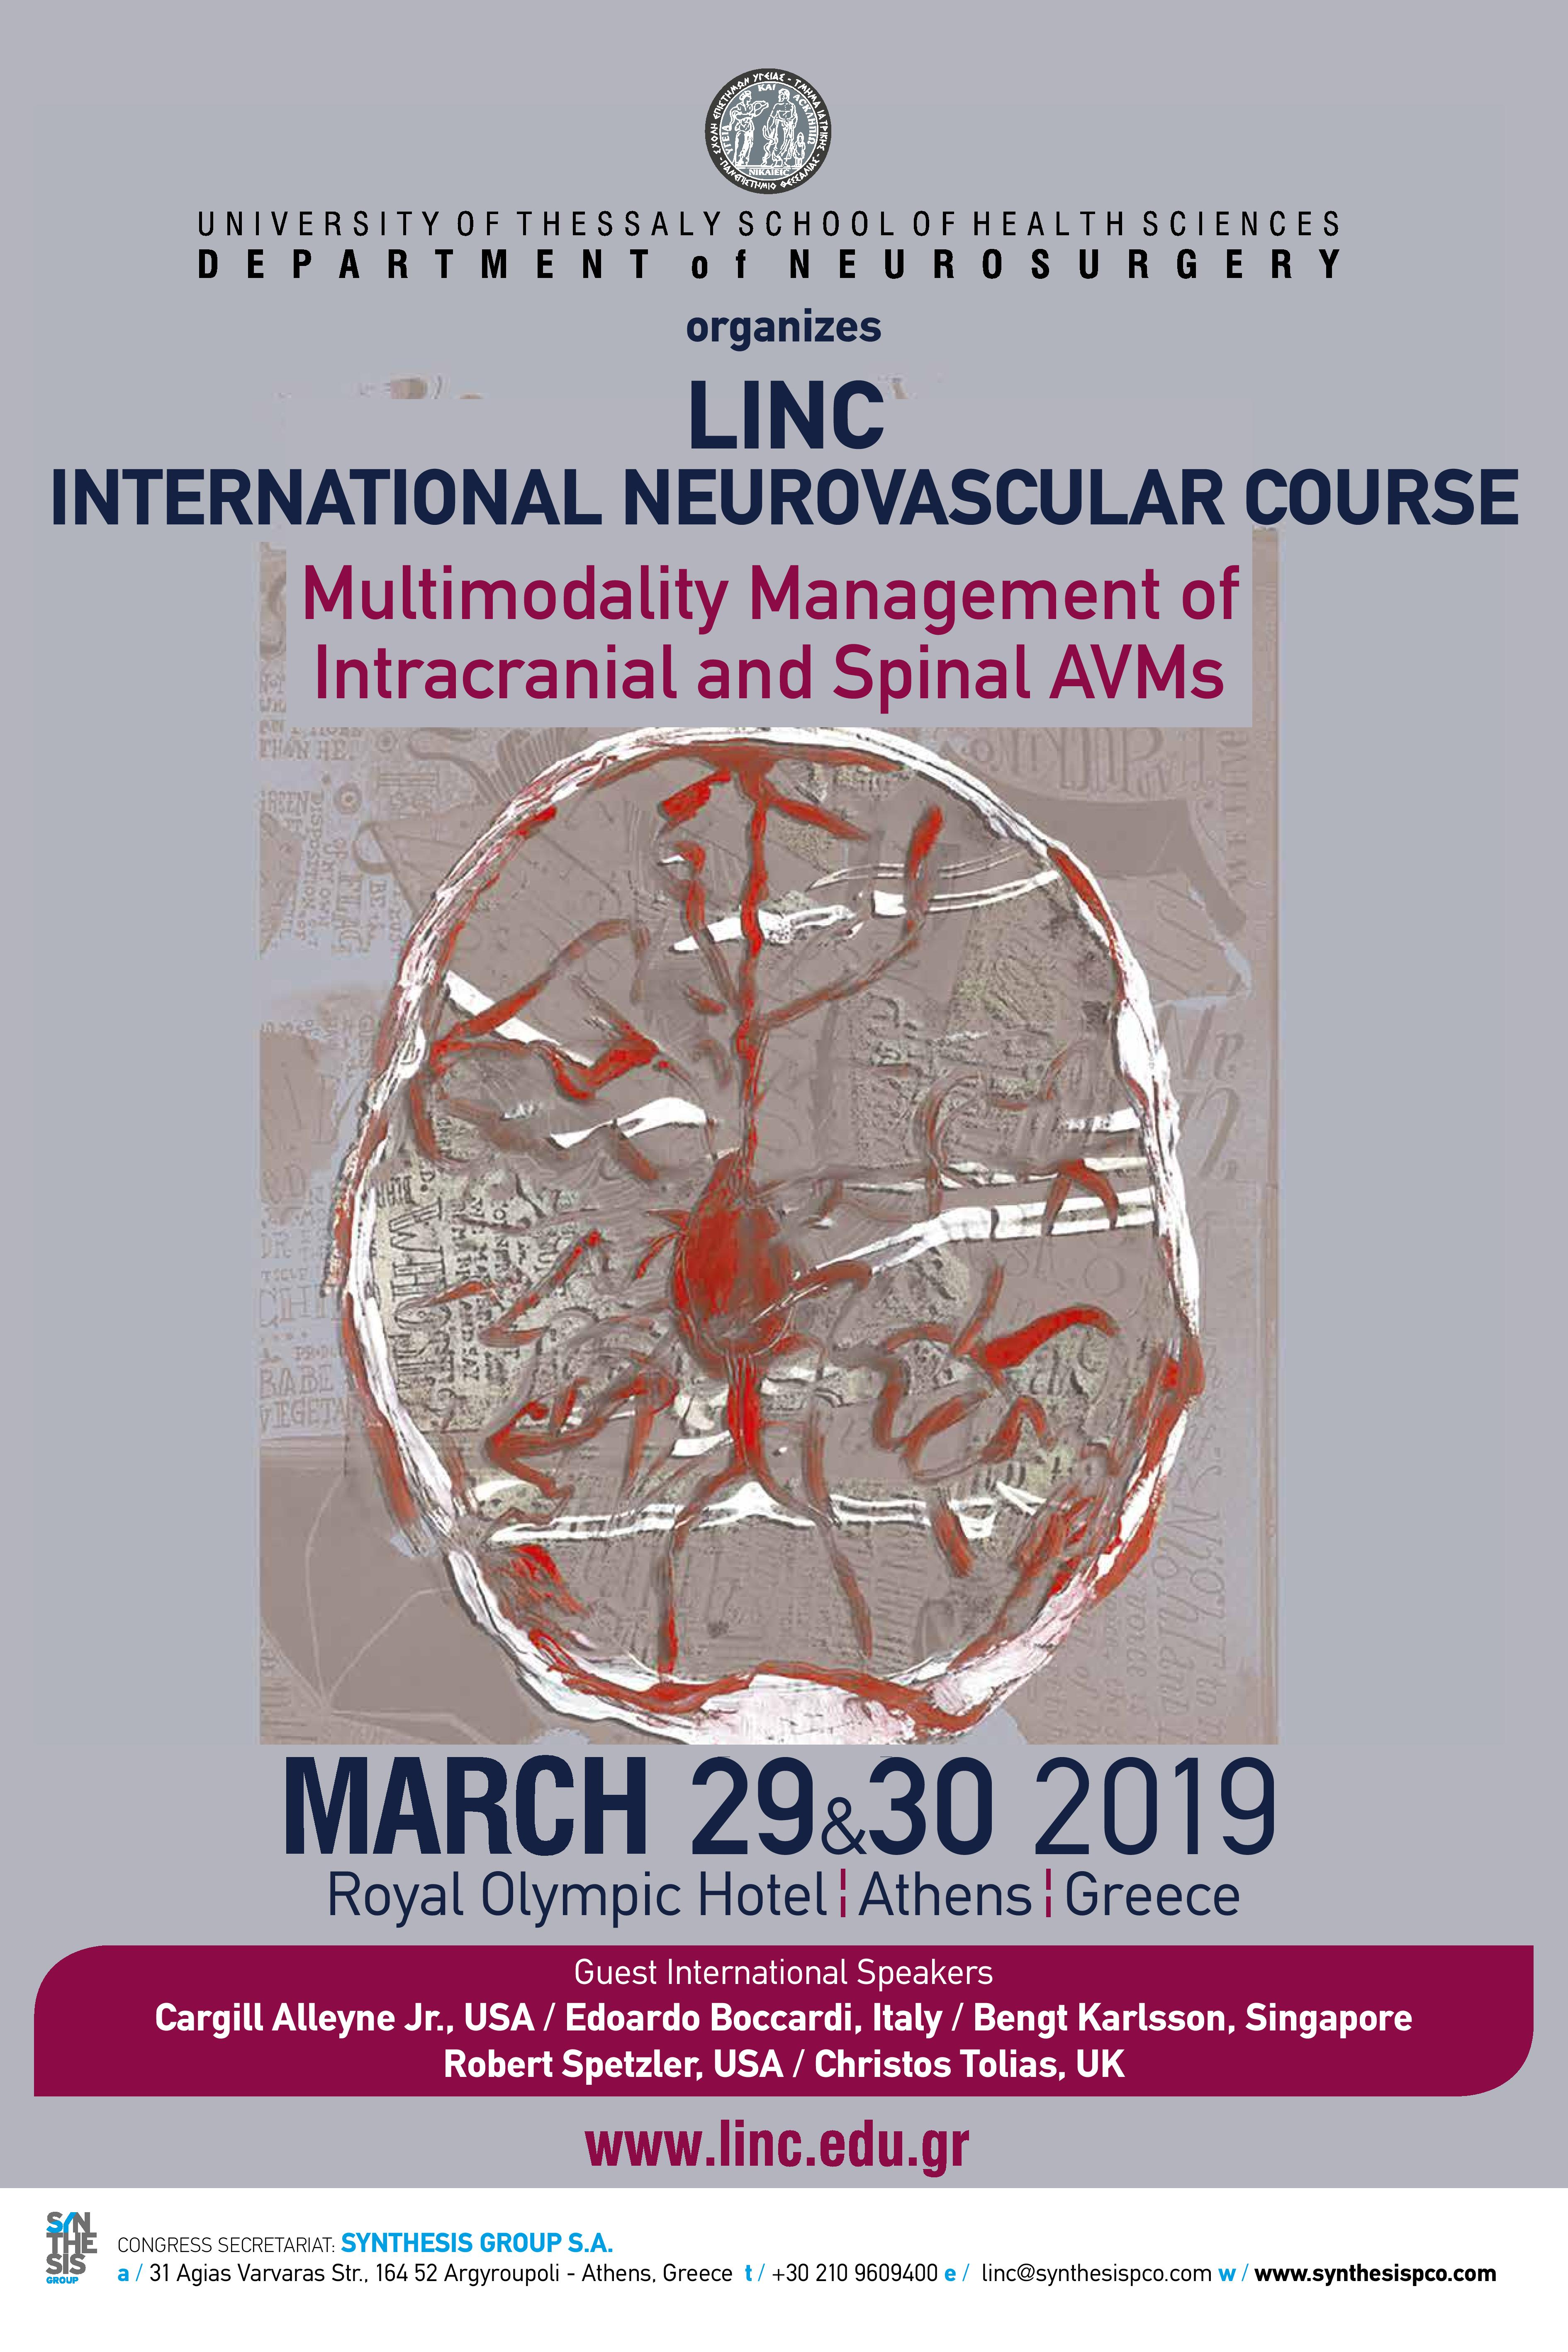 LINC - International Neurovascular Course – Multimodality Management of Intracranial and Spinal AVMs